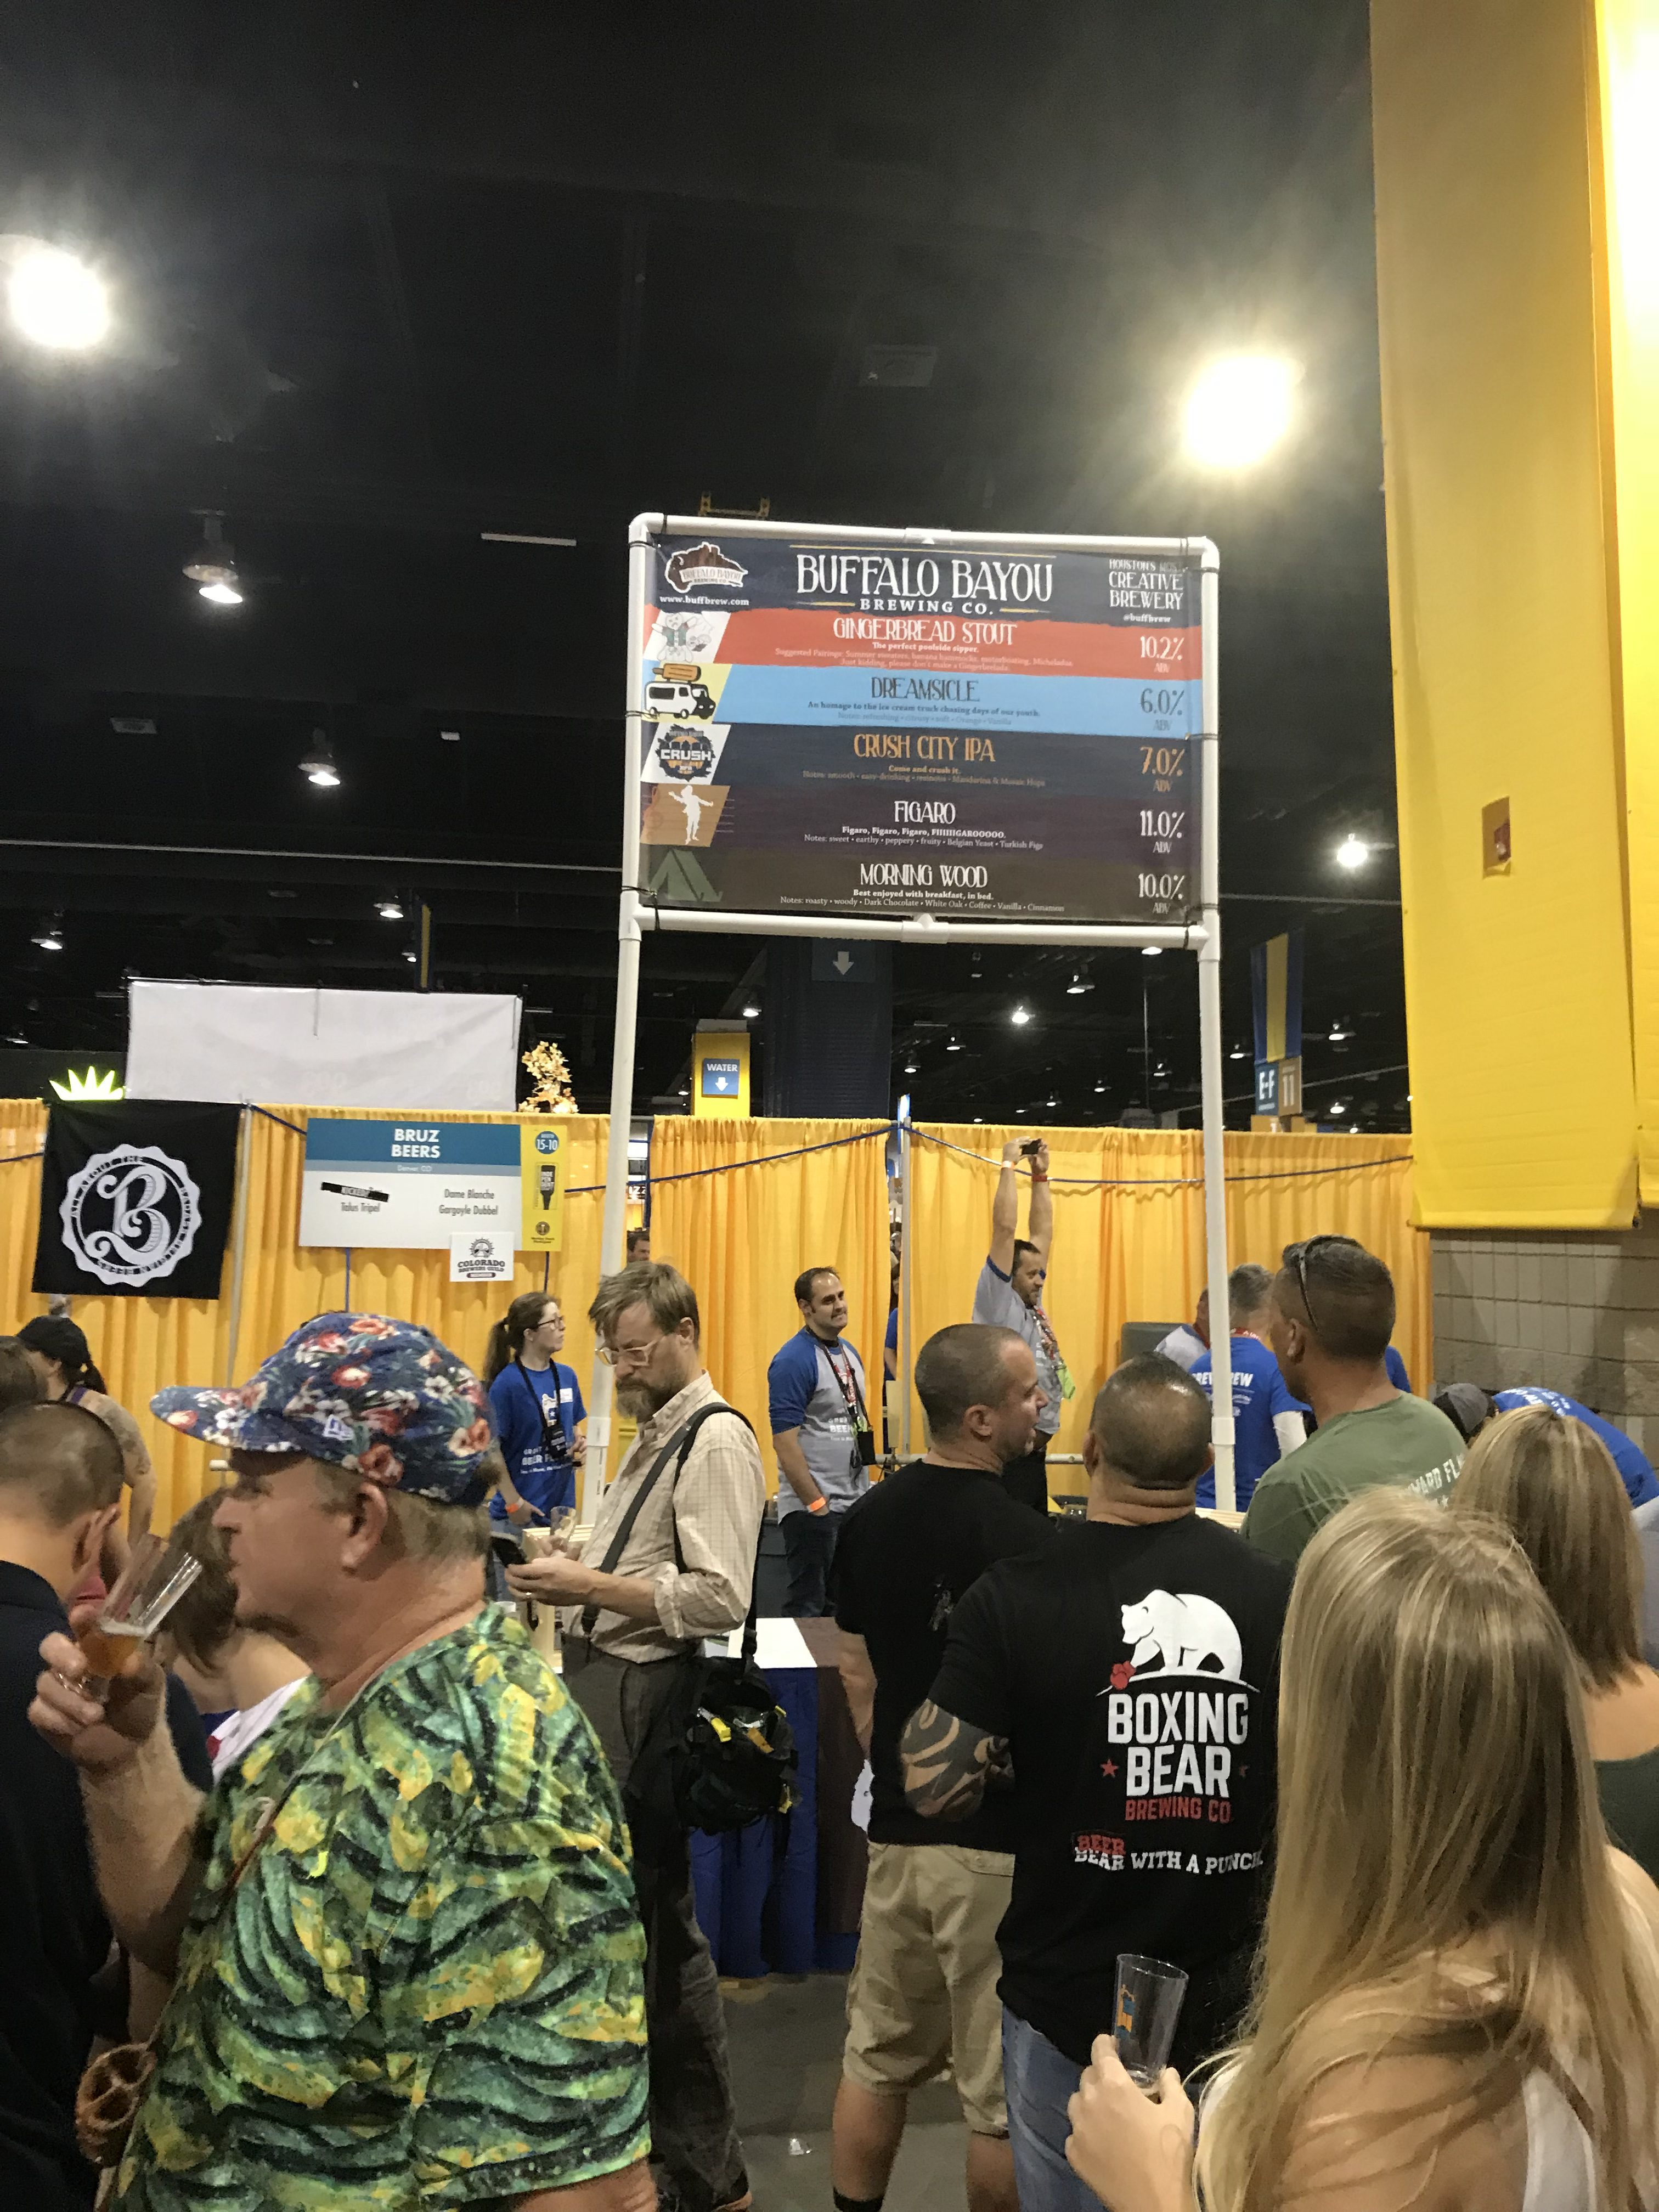 The Buffalo Bayou booth at the Great American Beer Festival in Denver, Colorado.